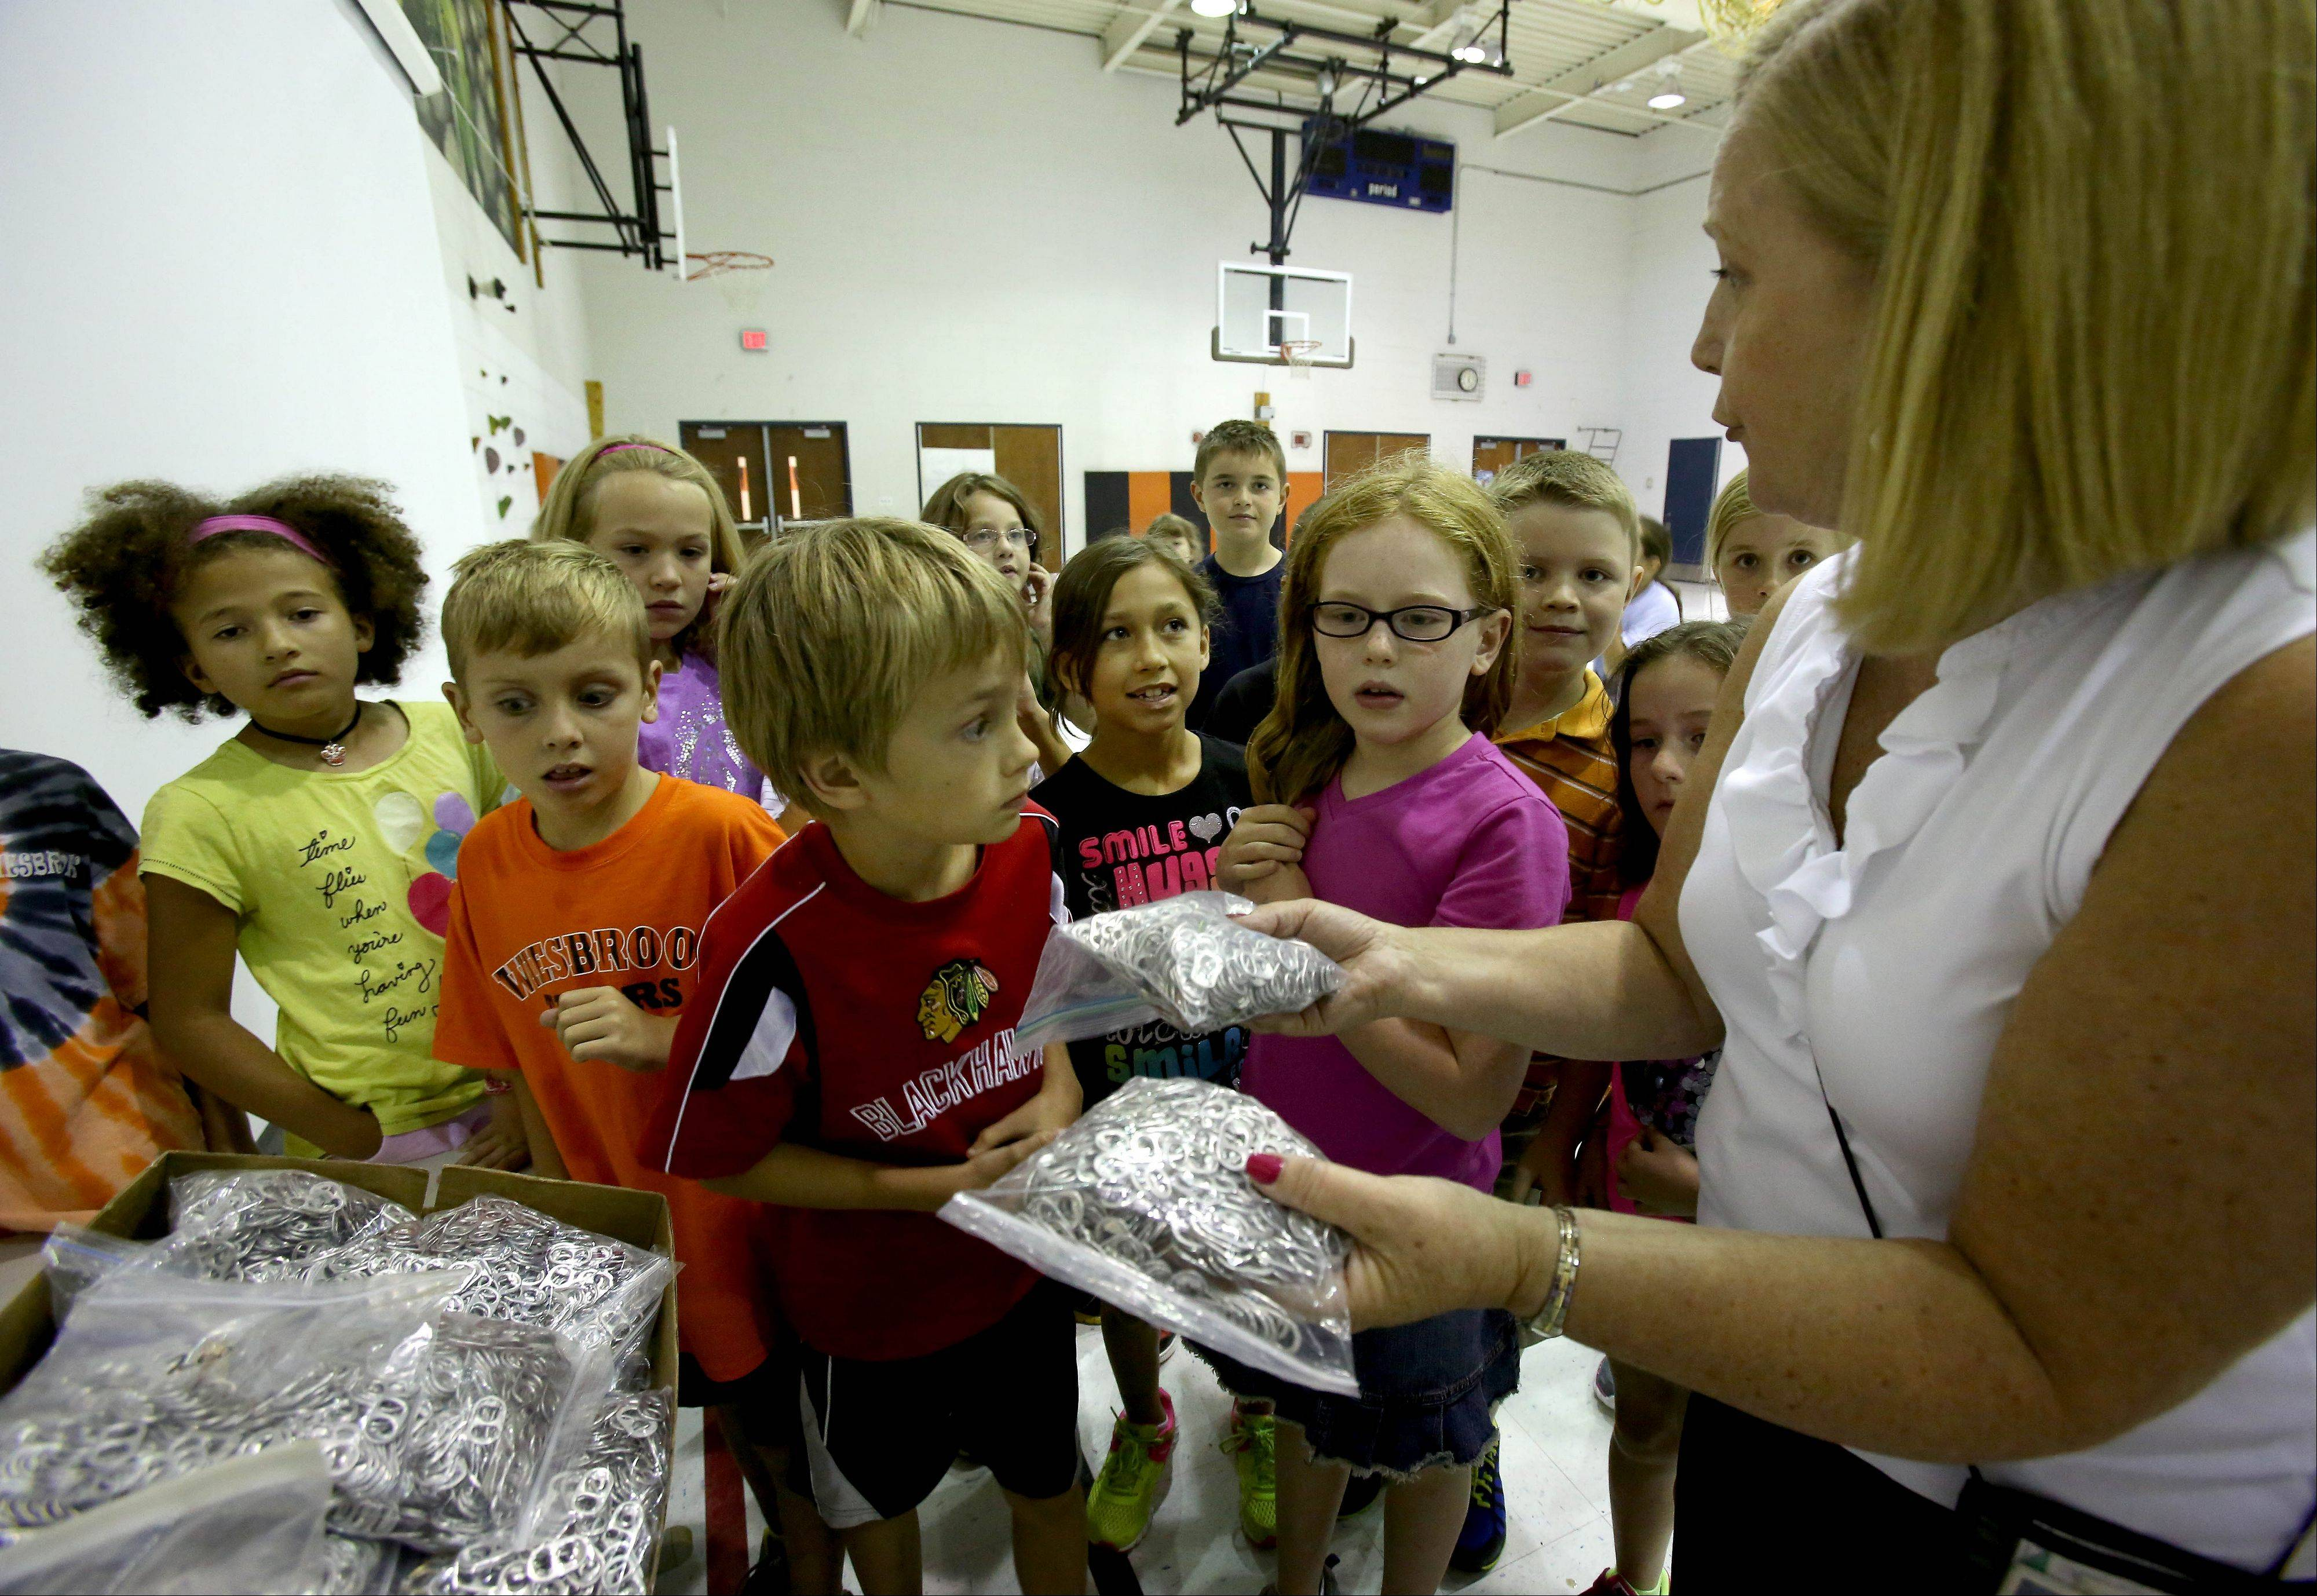 Elaine Cimino, a second-grade teacher at Wiesbrook Elementary School in Wheaton, and her students spent the past eight years collecting 1 million pop can tops to donate to Ronald McDonald House Charities.